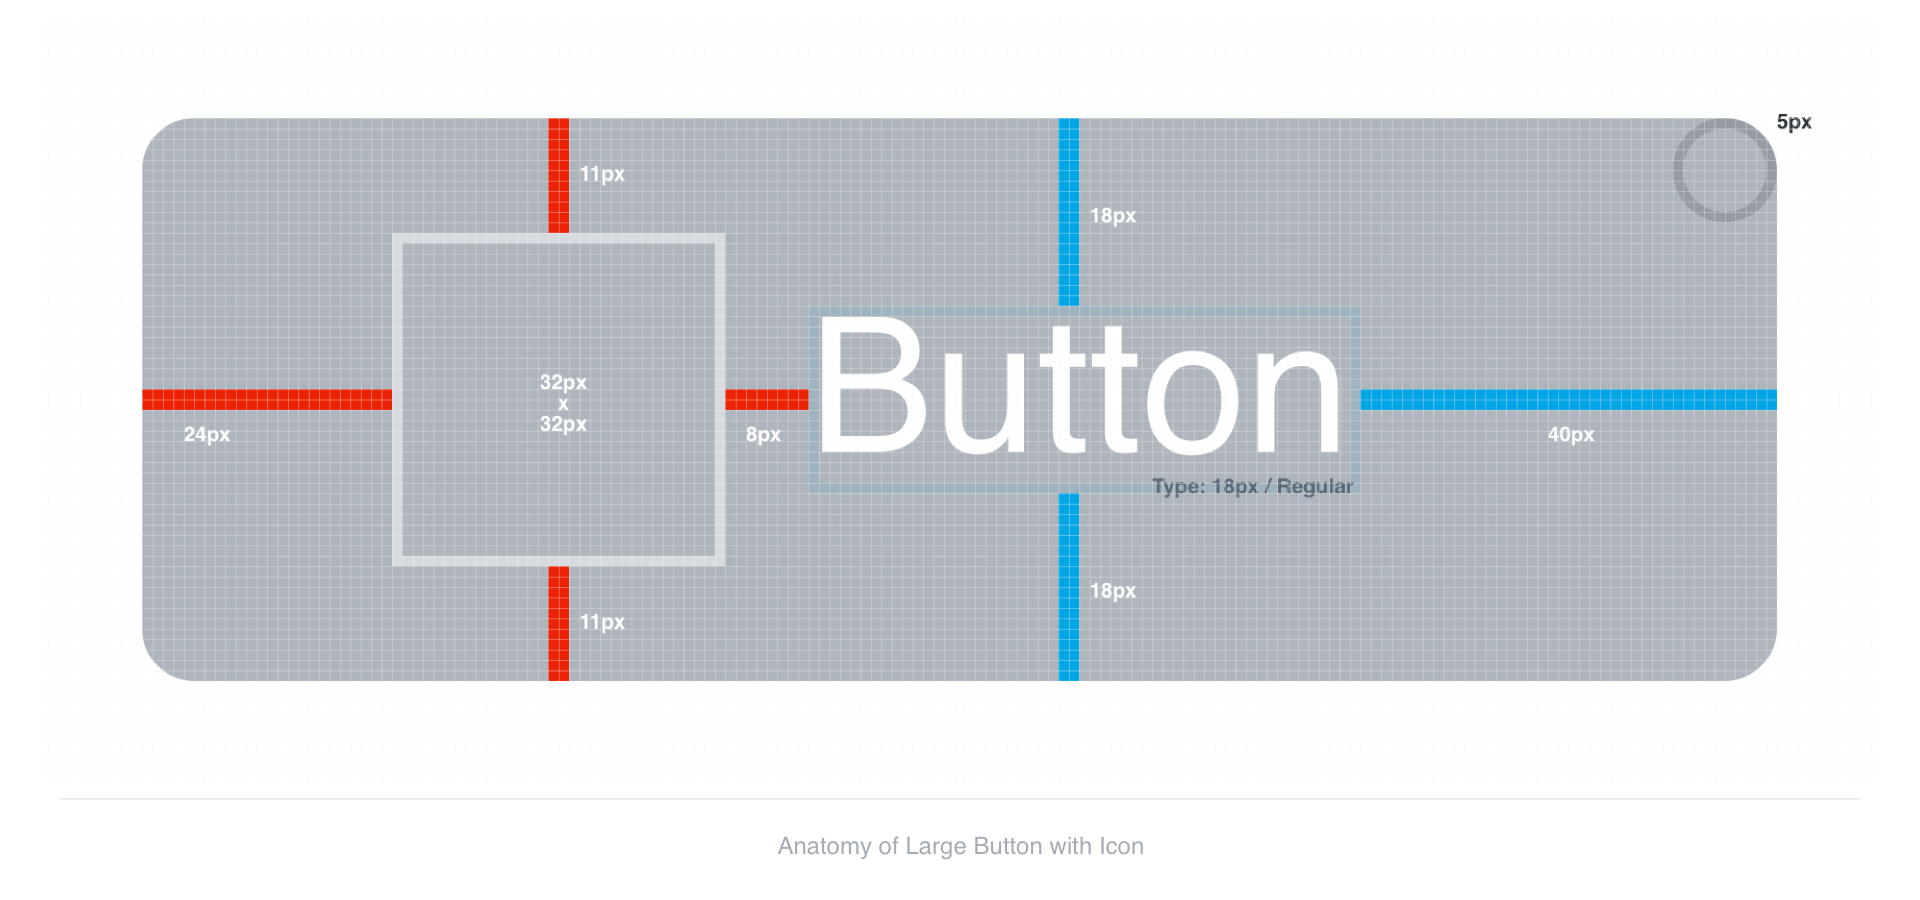 Anatomy of Large Button